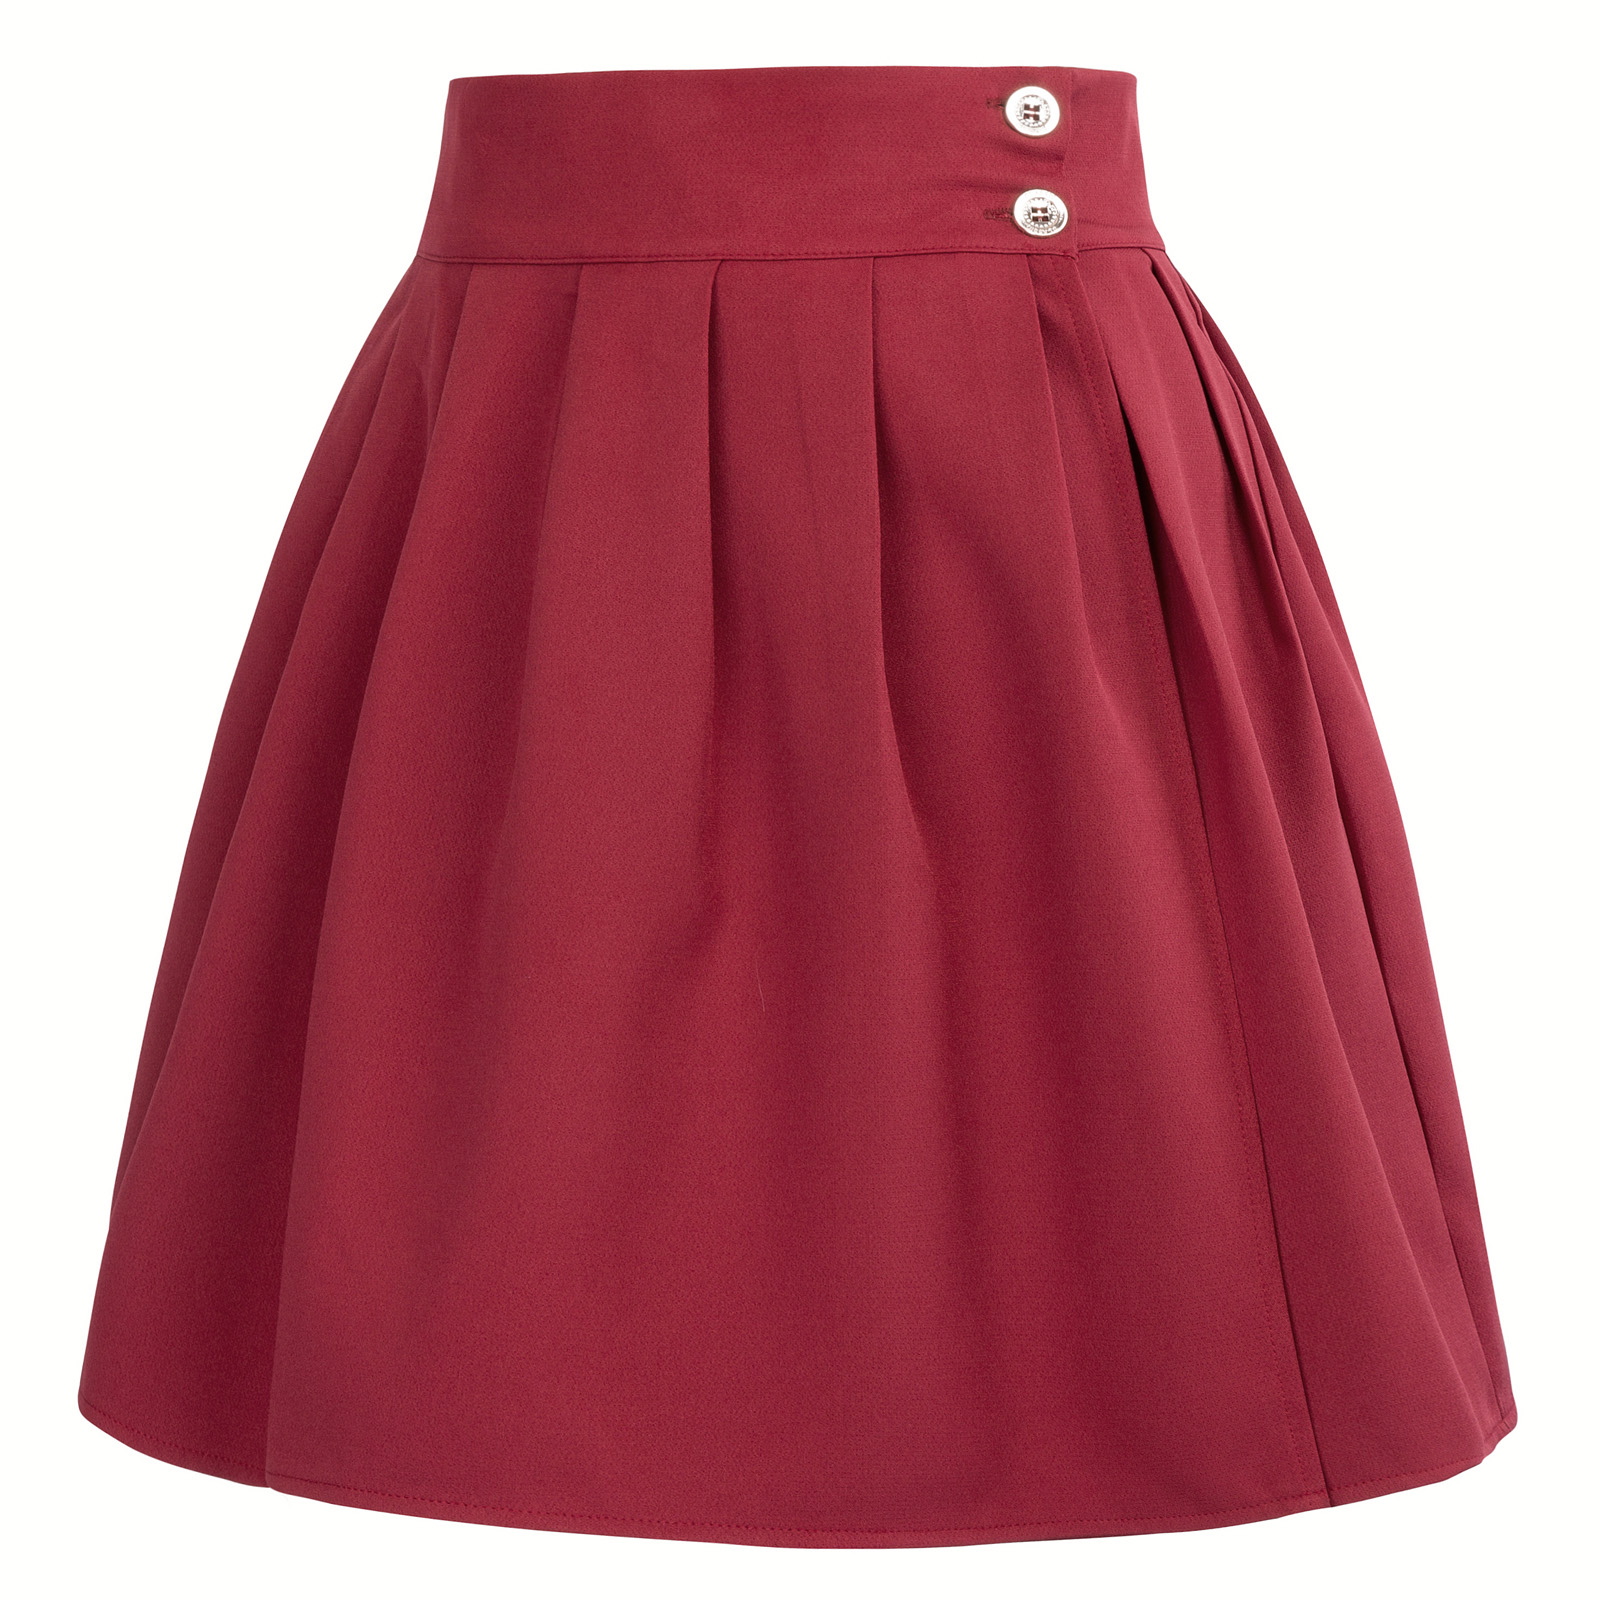 women skirt summer Retro 50s 60s vintage Women High Waist Skater Flared Pleated Swing mini Skirt plus size